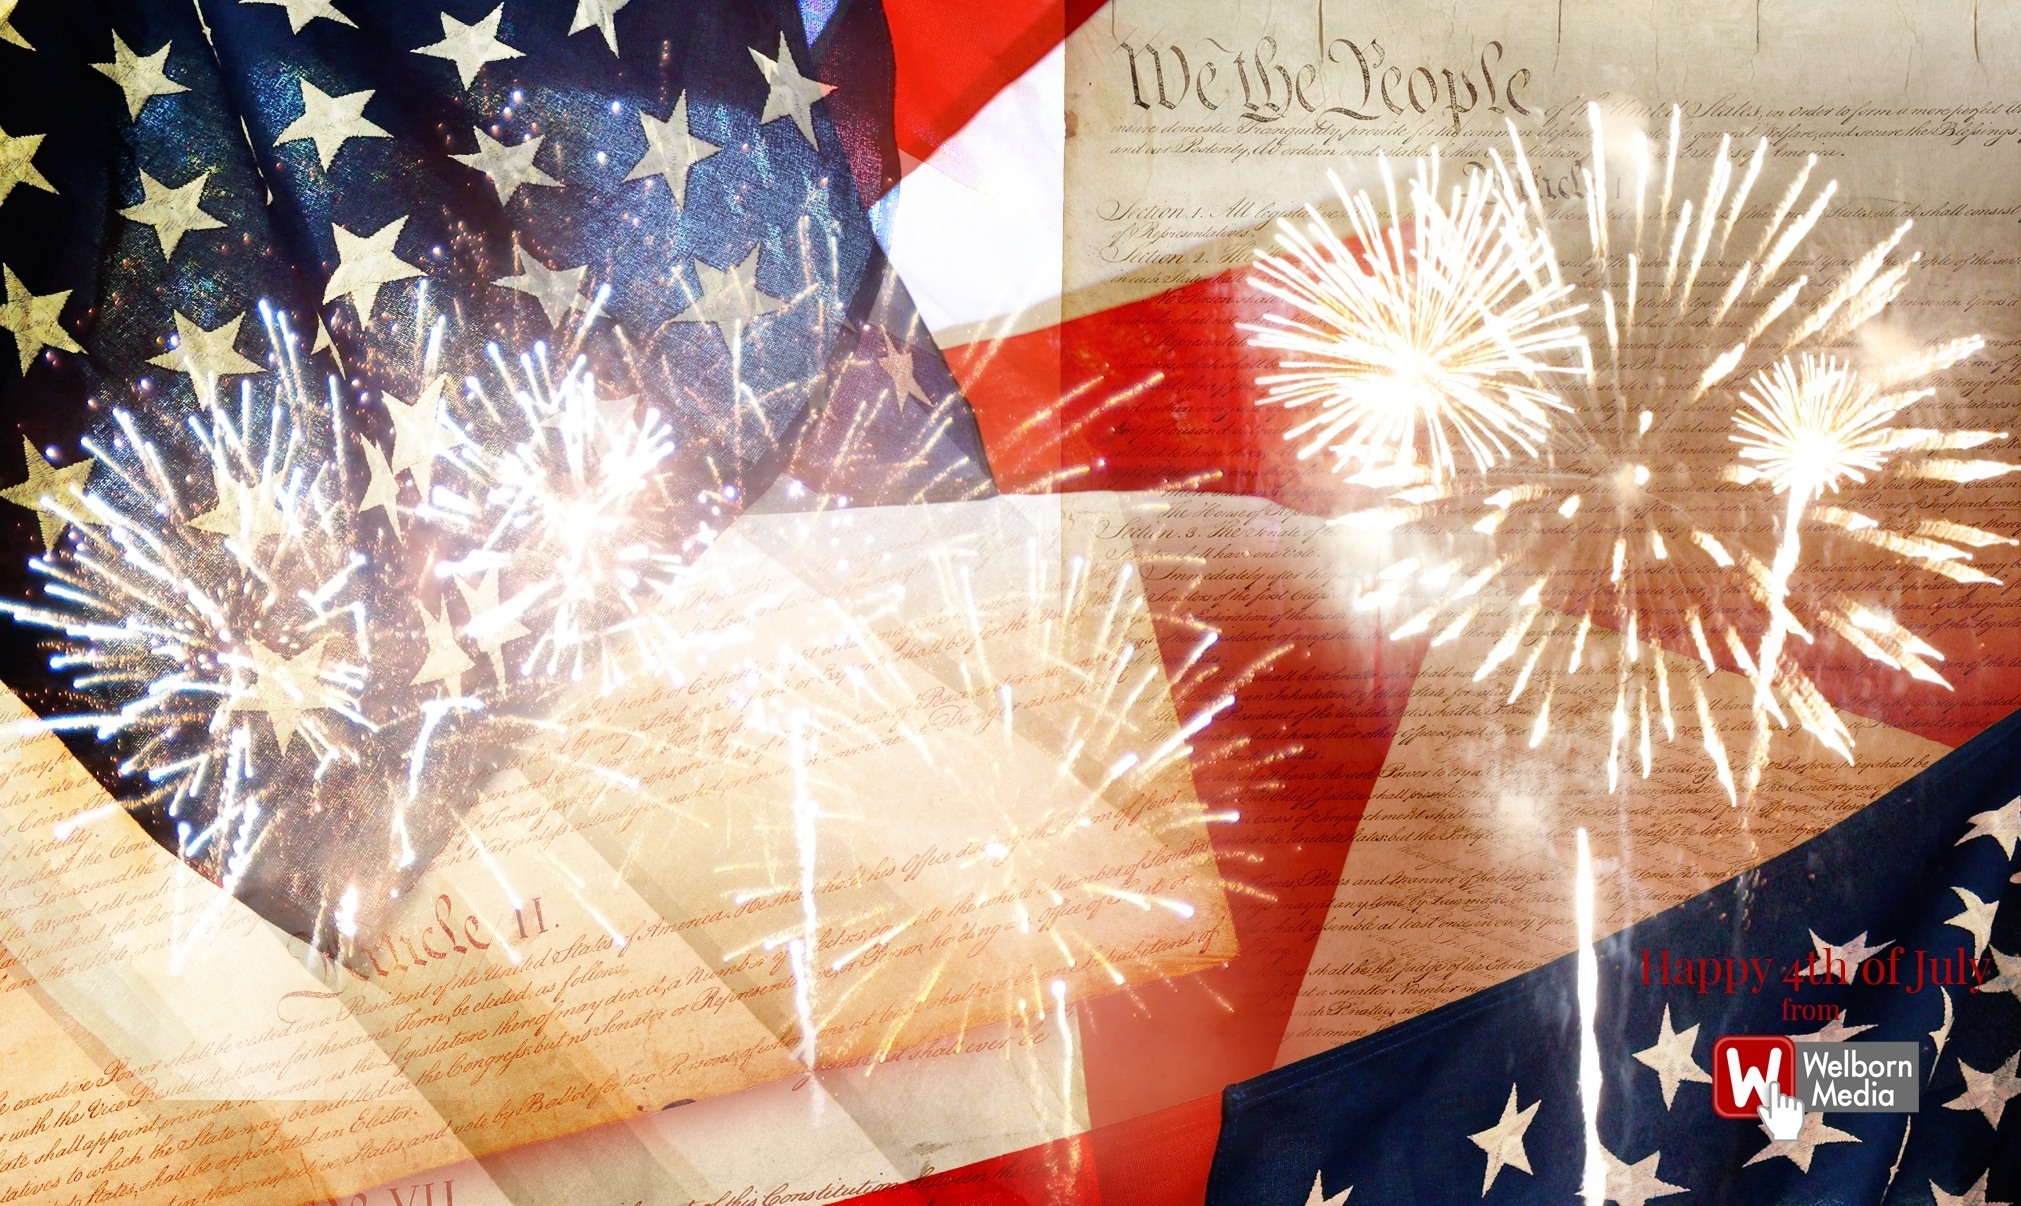 free download – 4th of july wallpaper | welborn media